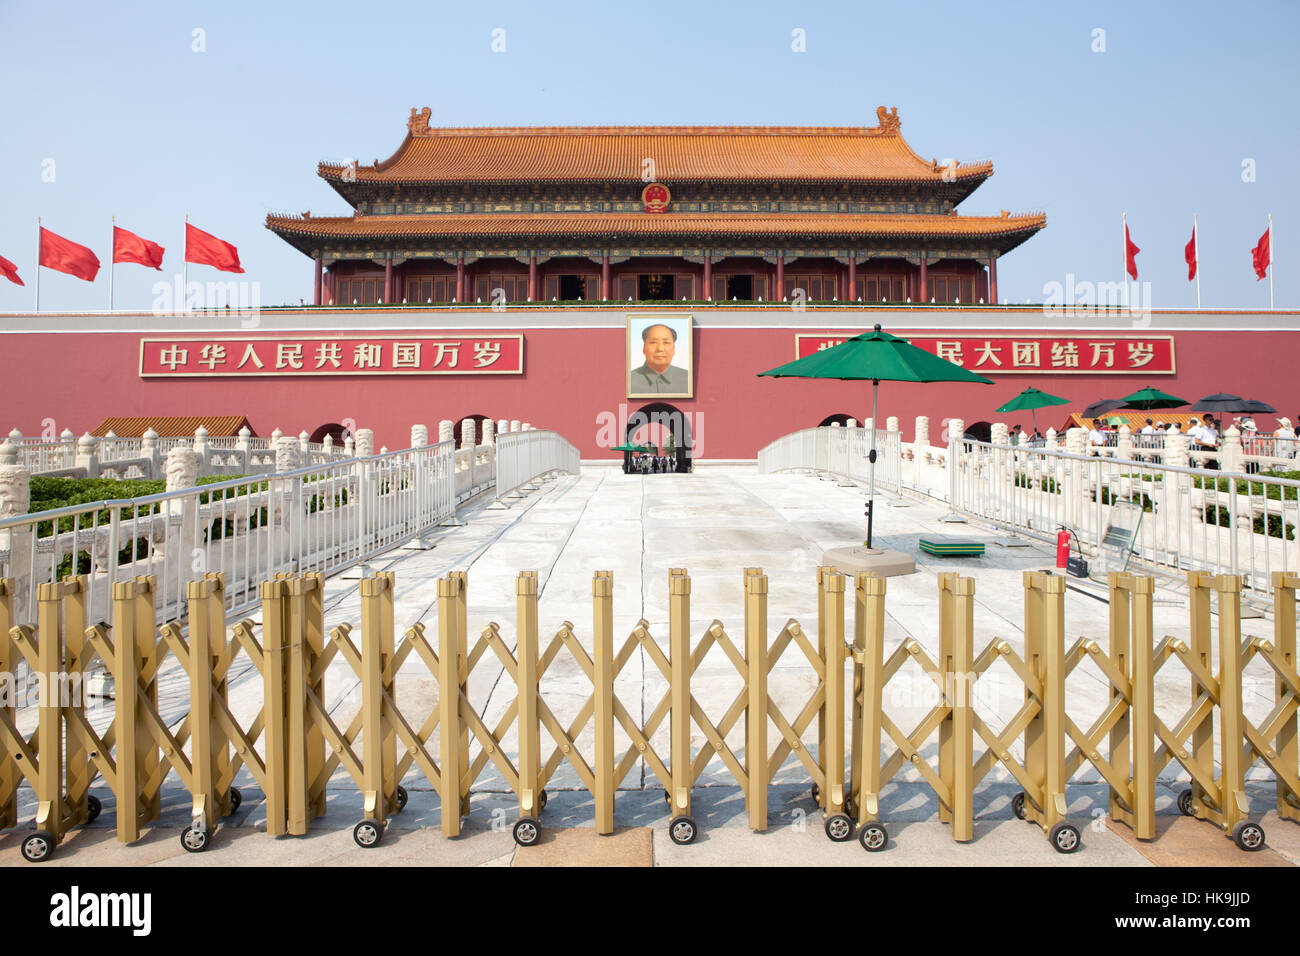 The entrance to the Forbidden City. Beijing, China - Stock Image